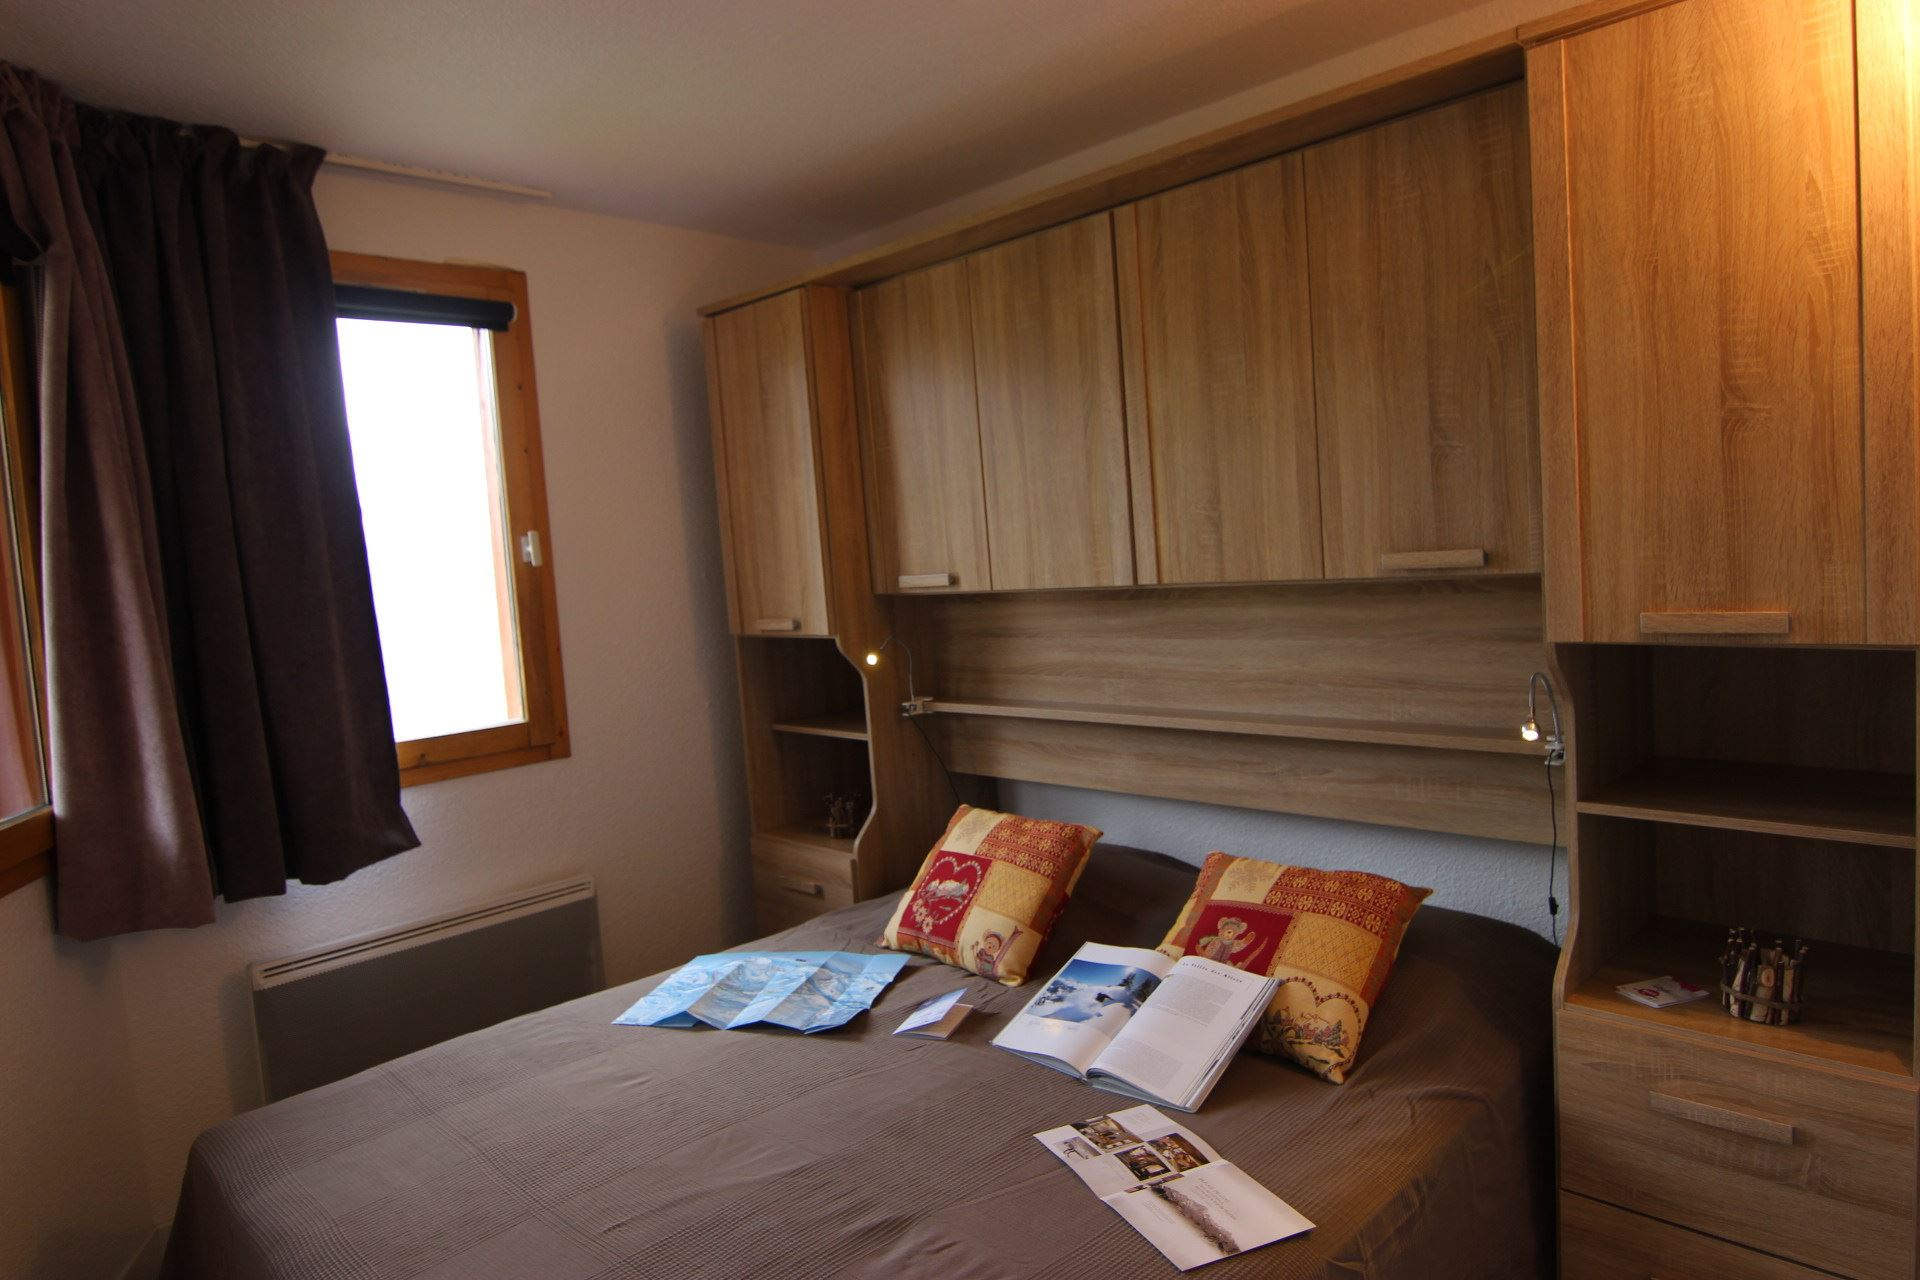 TEMPLES DU SOLEIL NAZCA H7-8 / APARTMENT 4 ROOMS 8 PERSONS - VTI